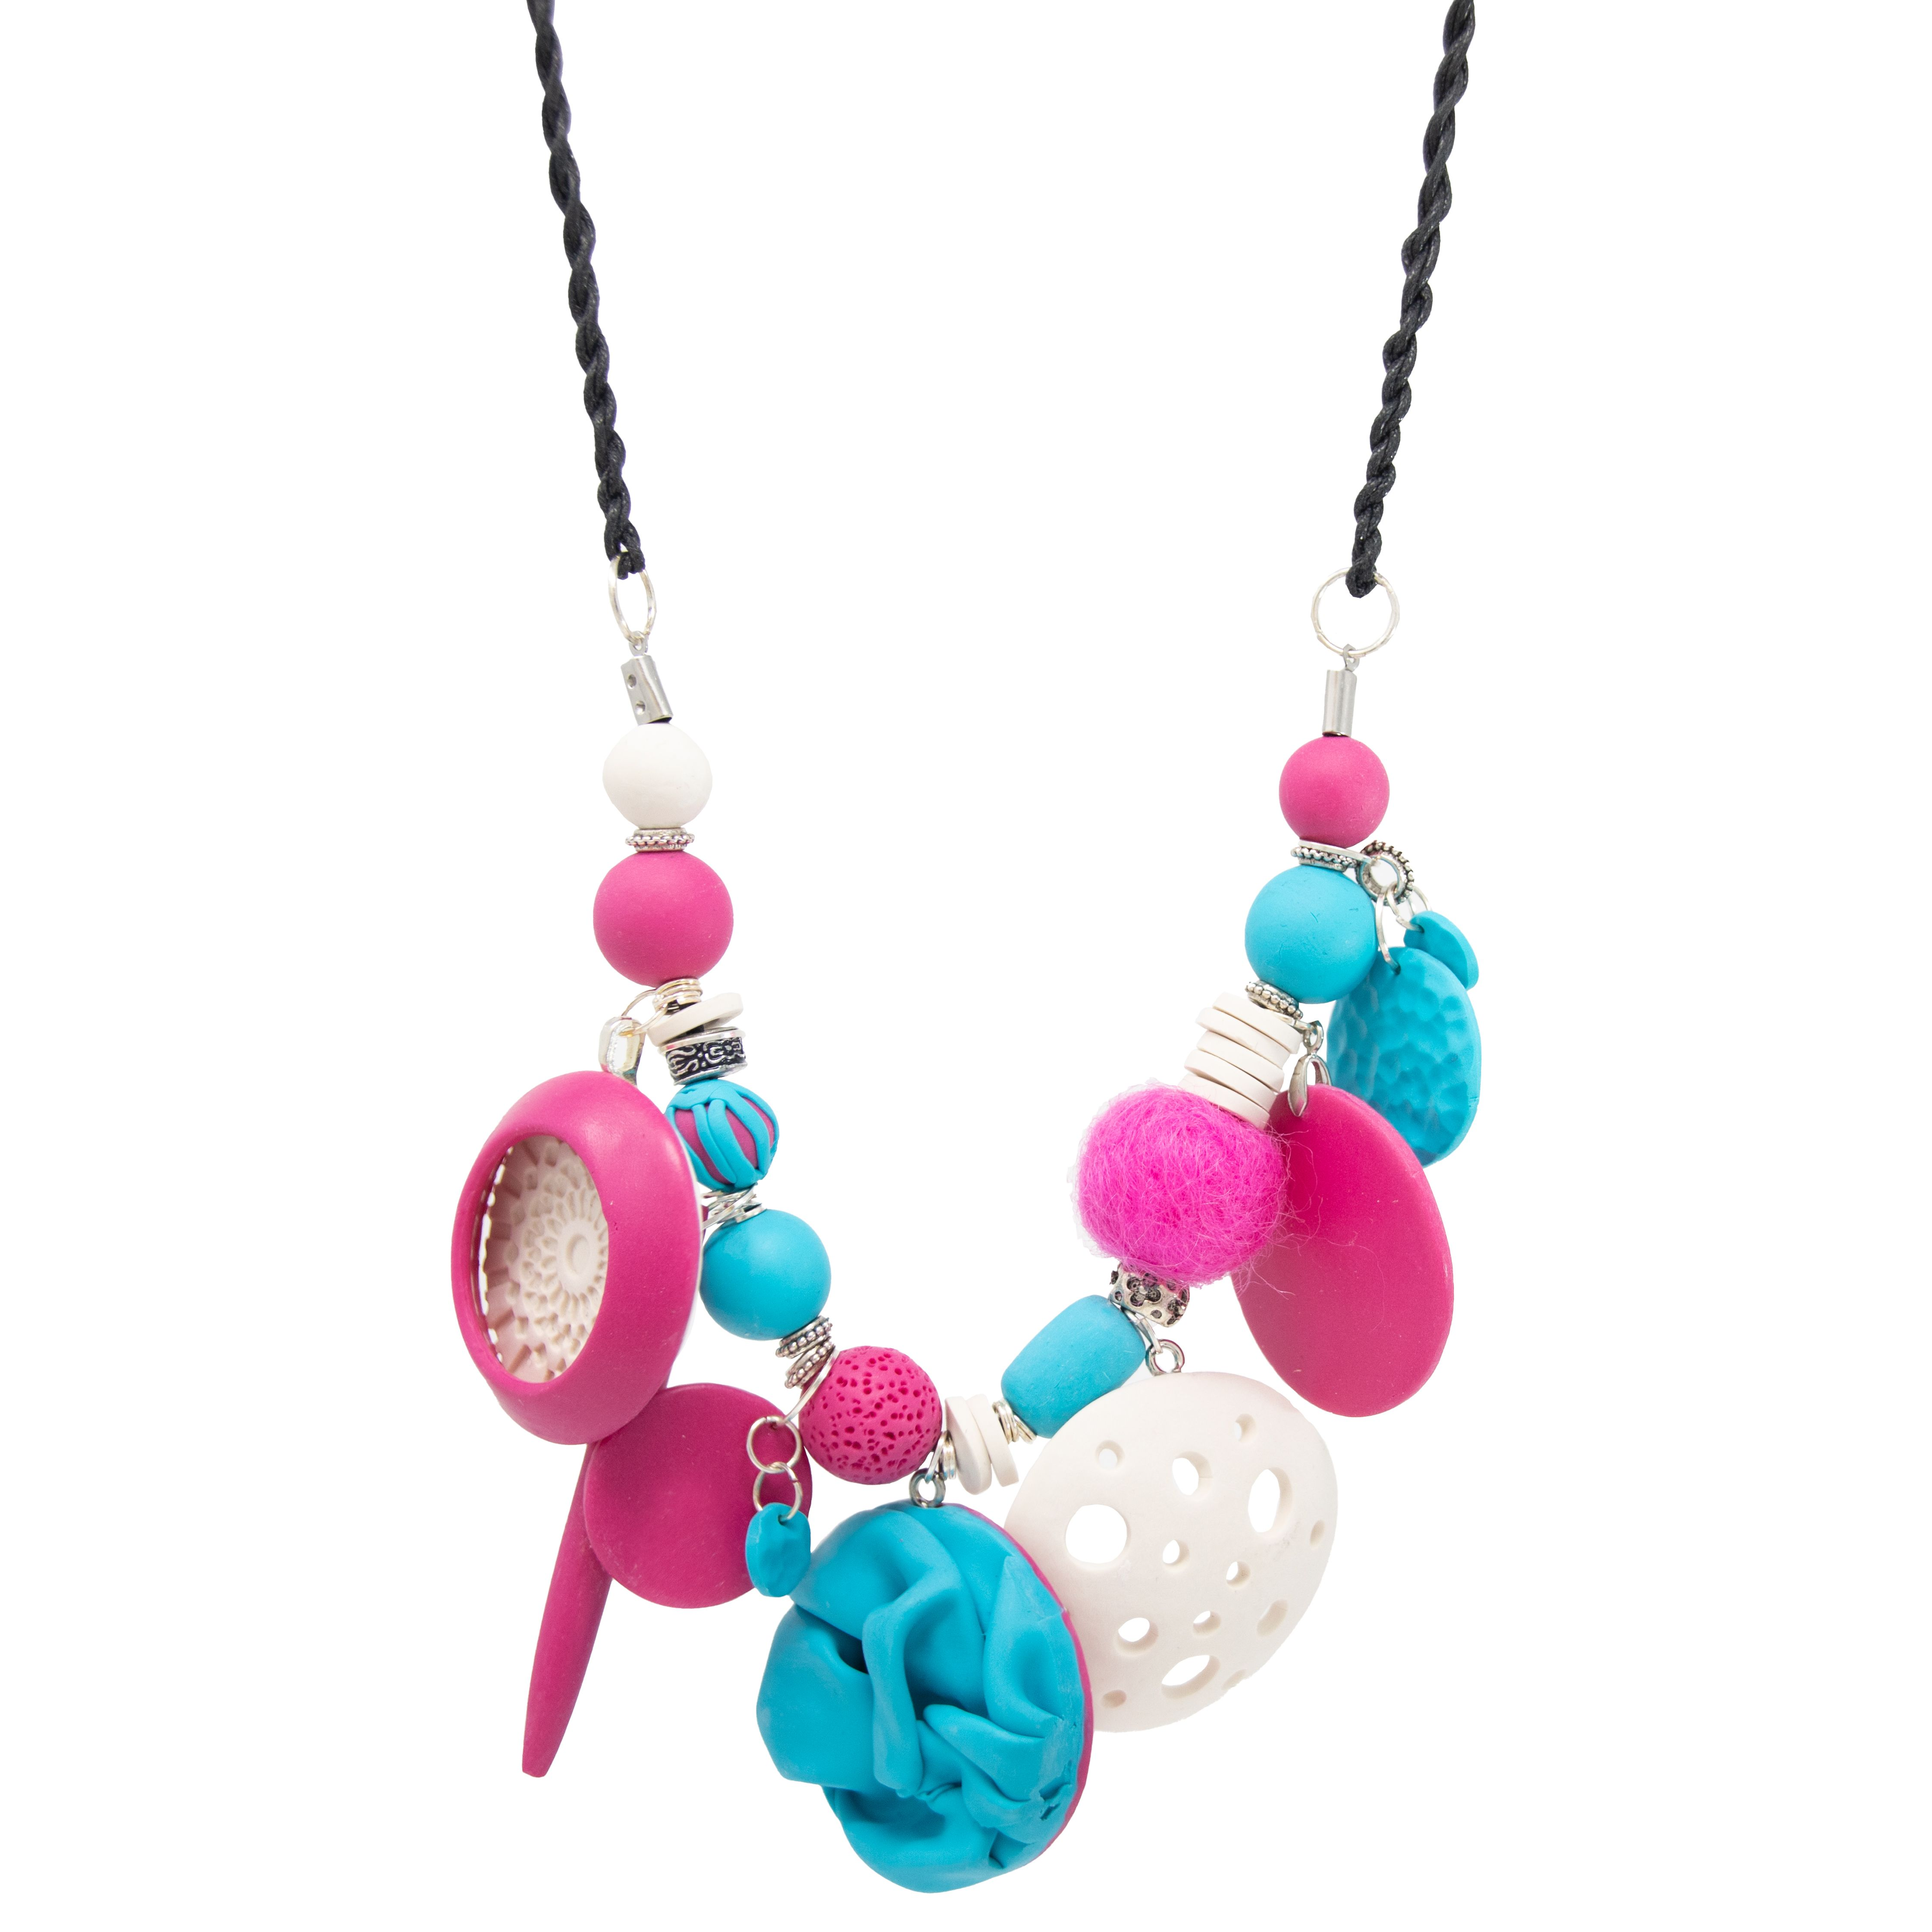 Busy polymer clay necklace Image